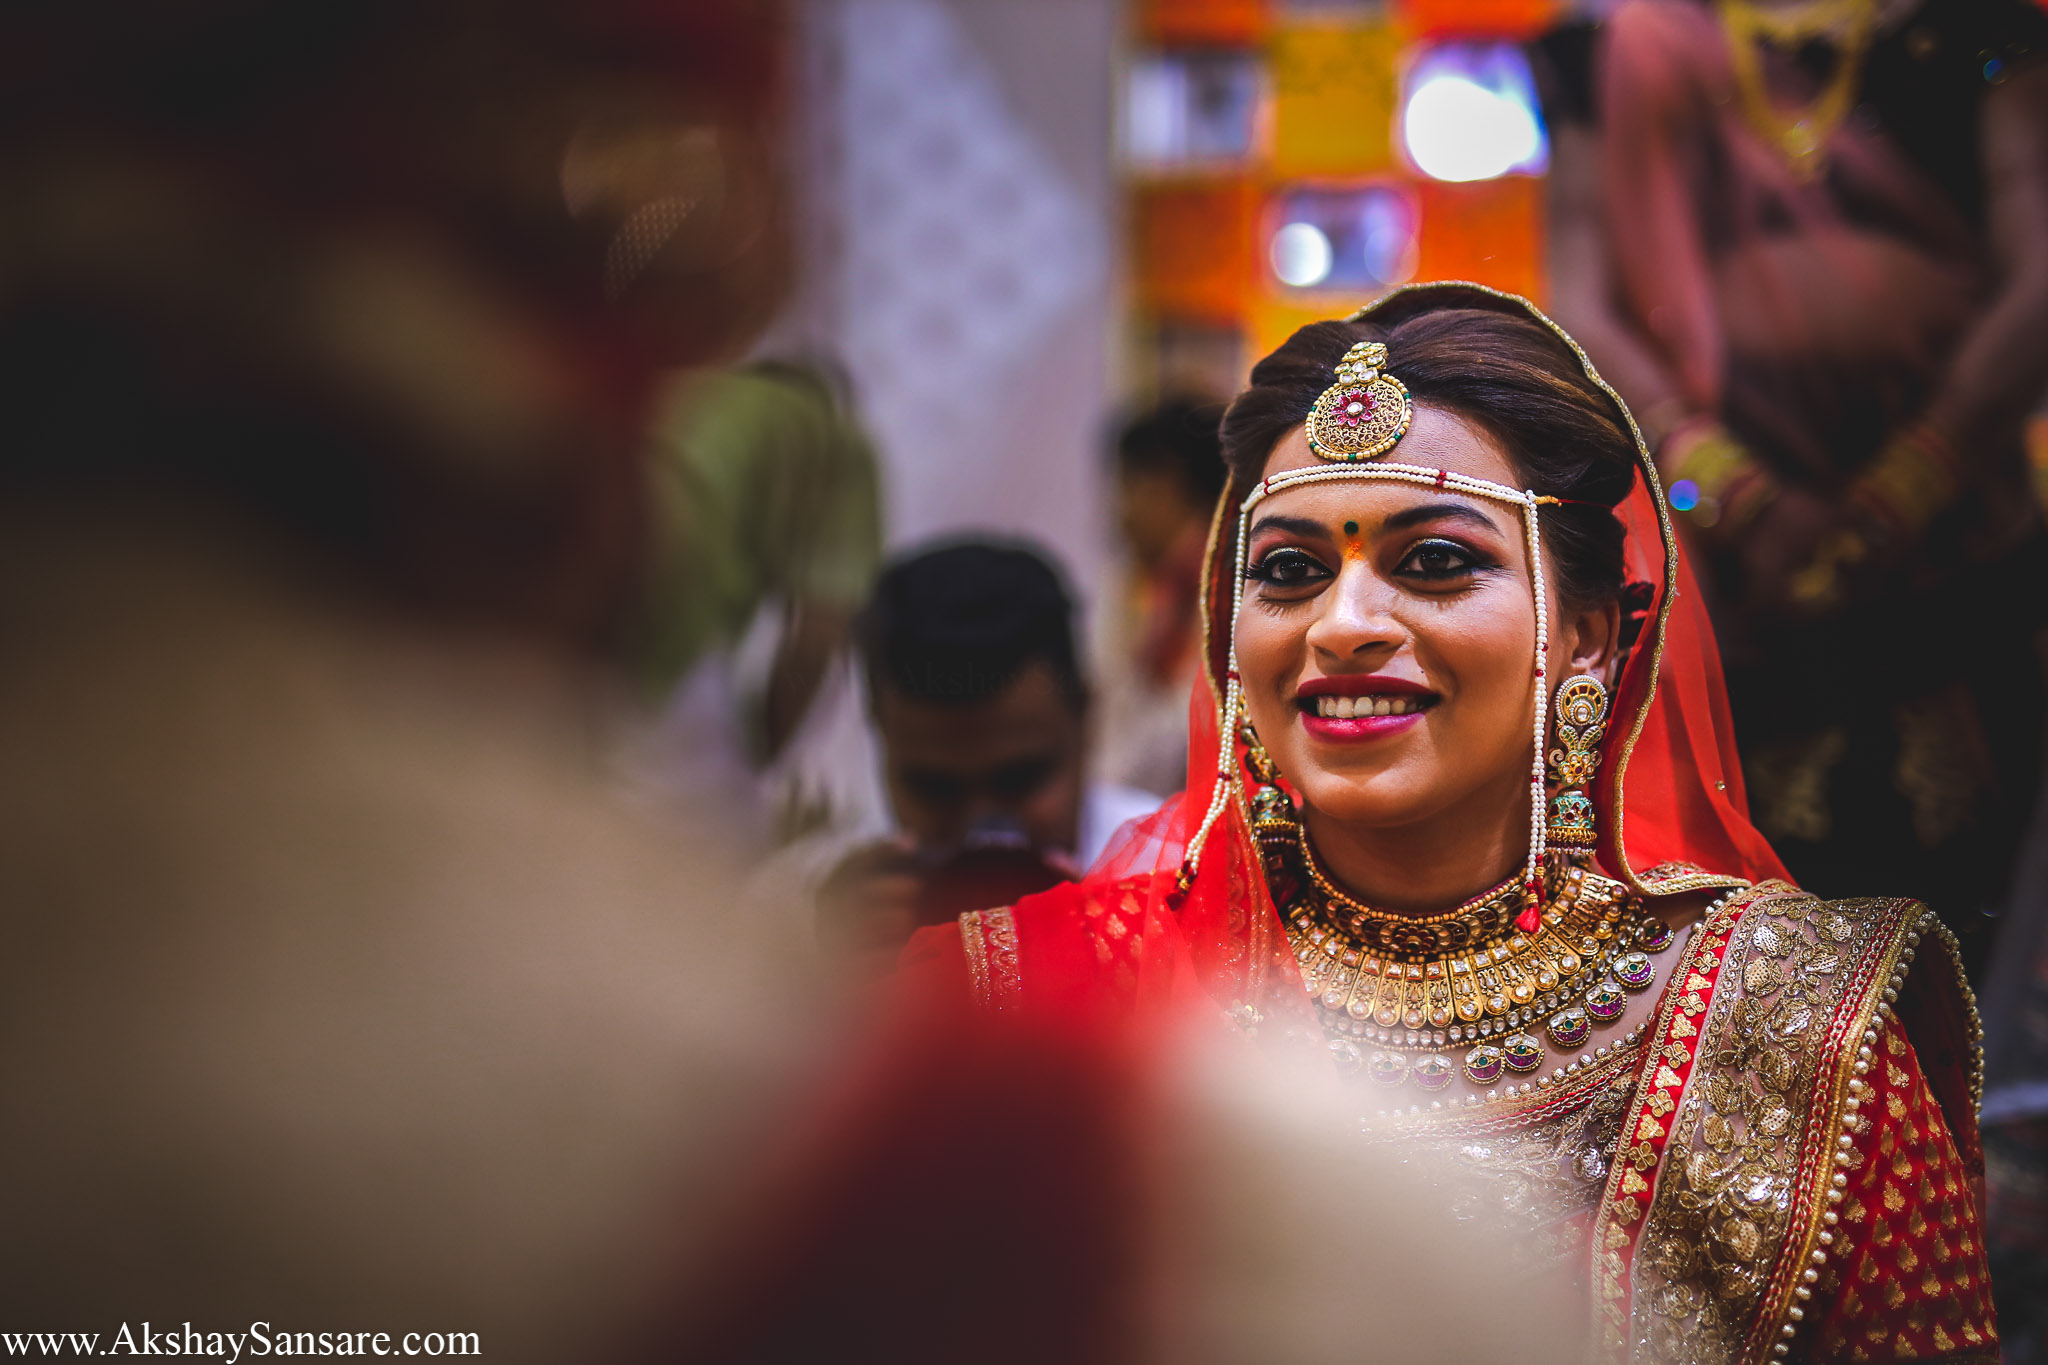 Ajay & Devika Akshay Sansare Photography Best Candid wedding photographer in mumbai india10.jpg